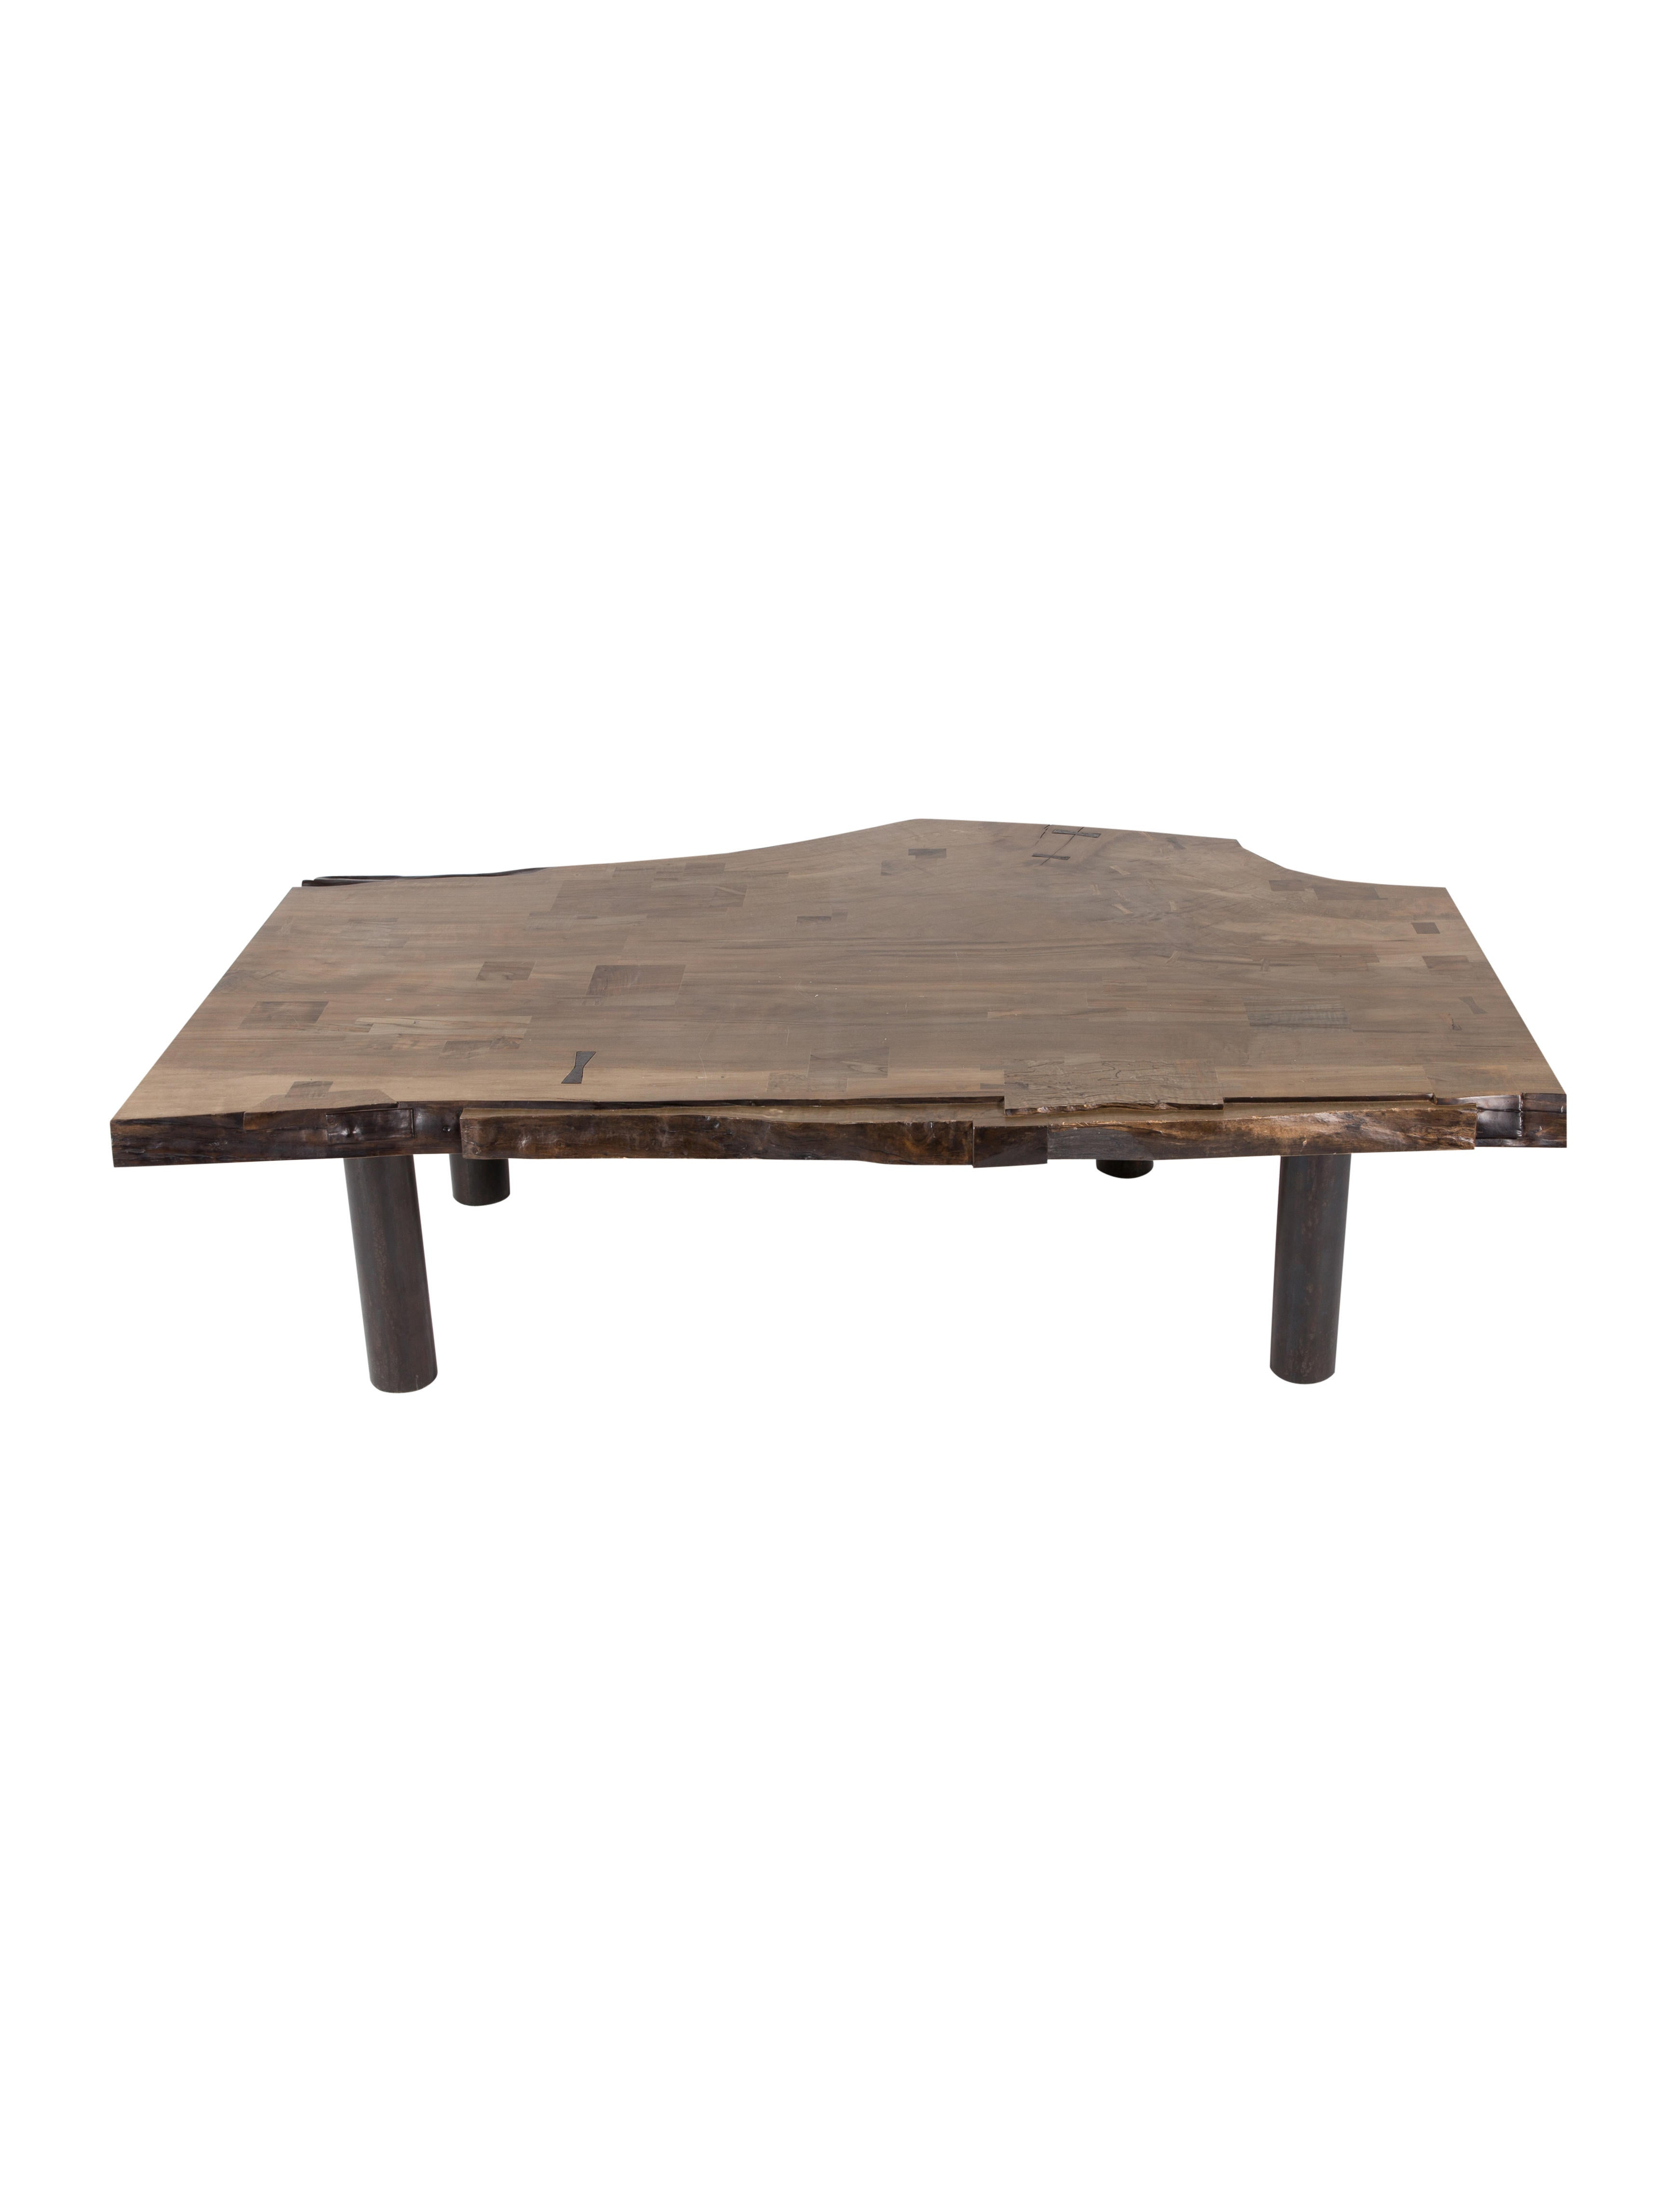 Contemporary Wood Coffee Table Furniture Table20421 The Realreal